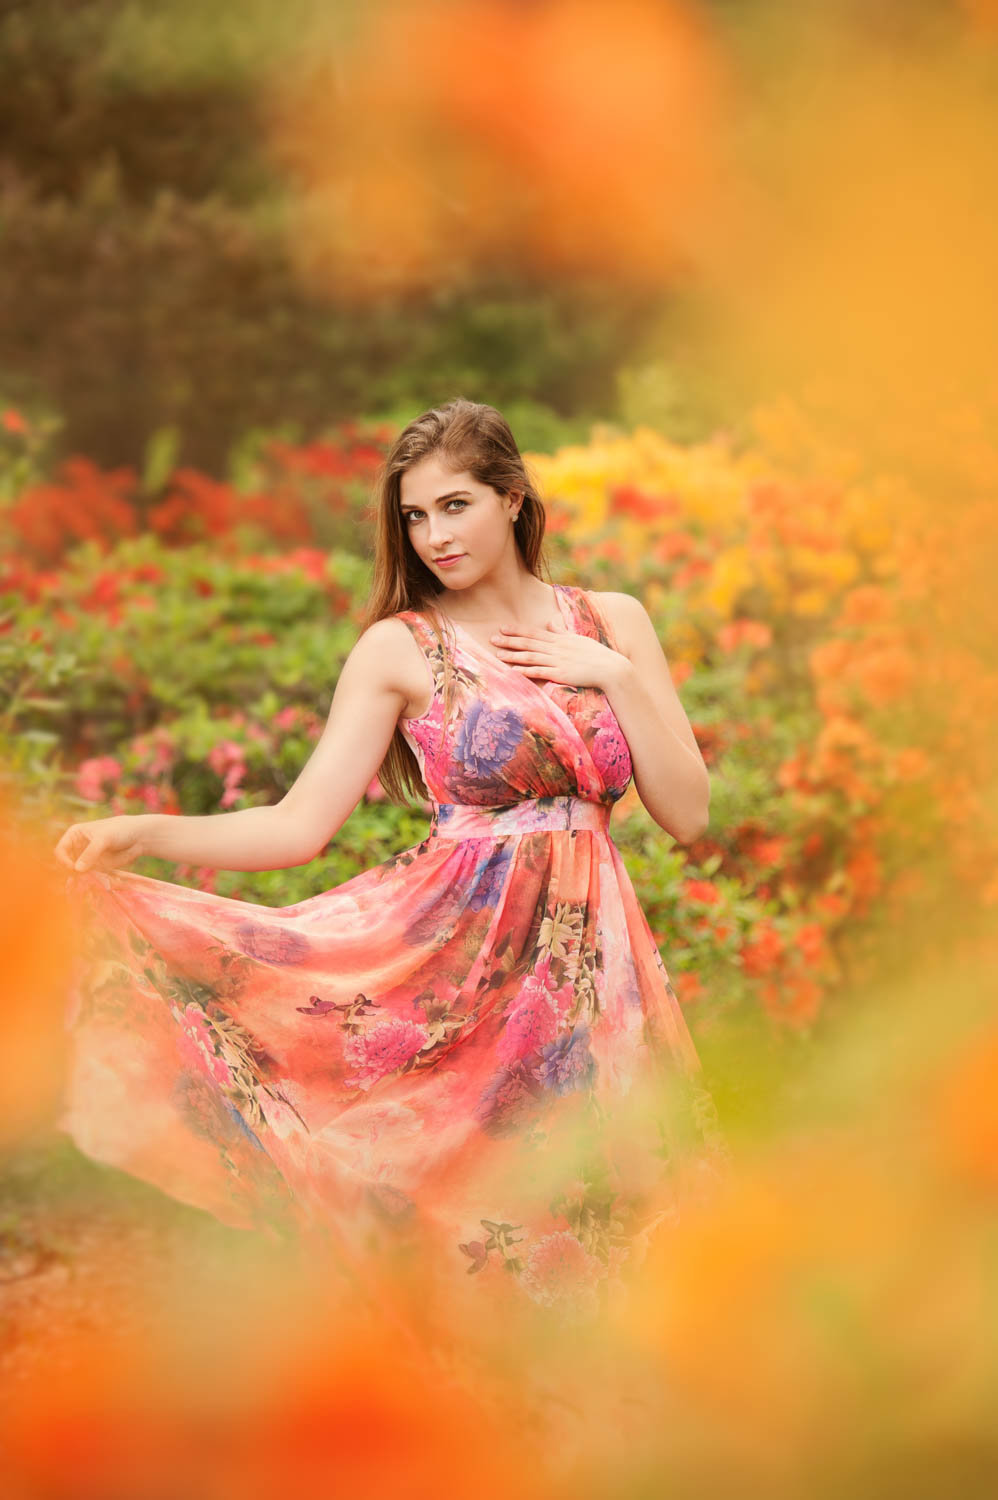 Technicolor senior picture outdoors in floral garden